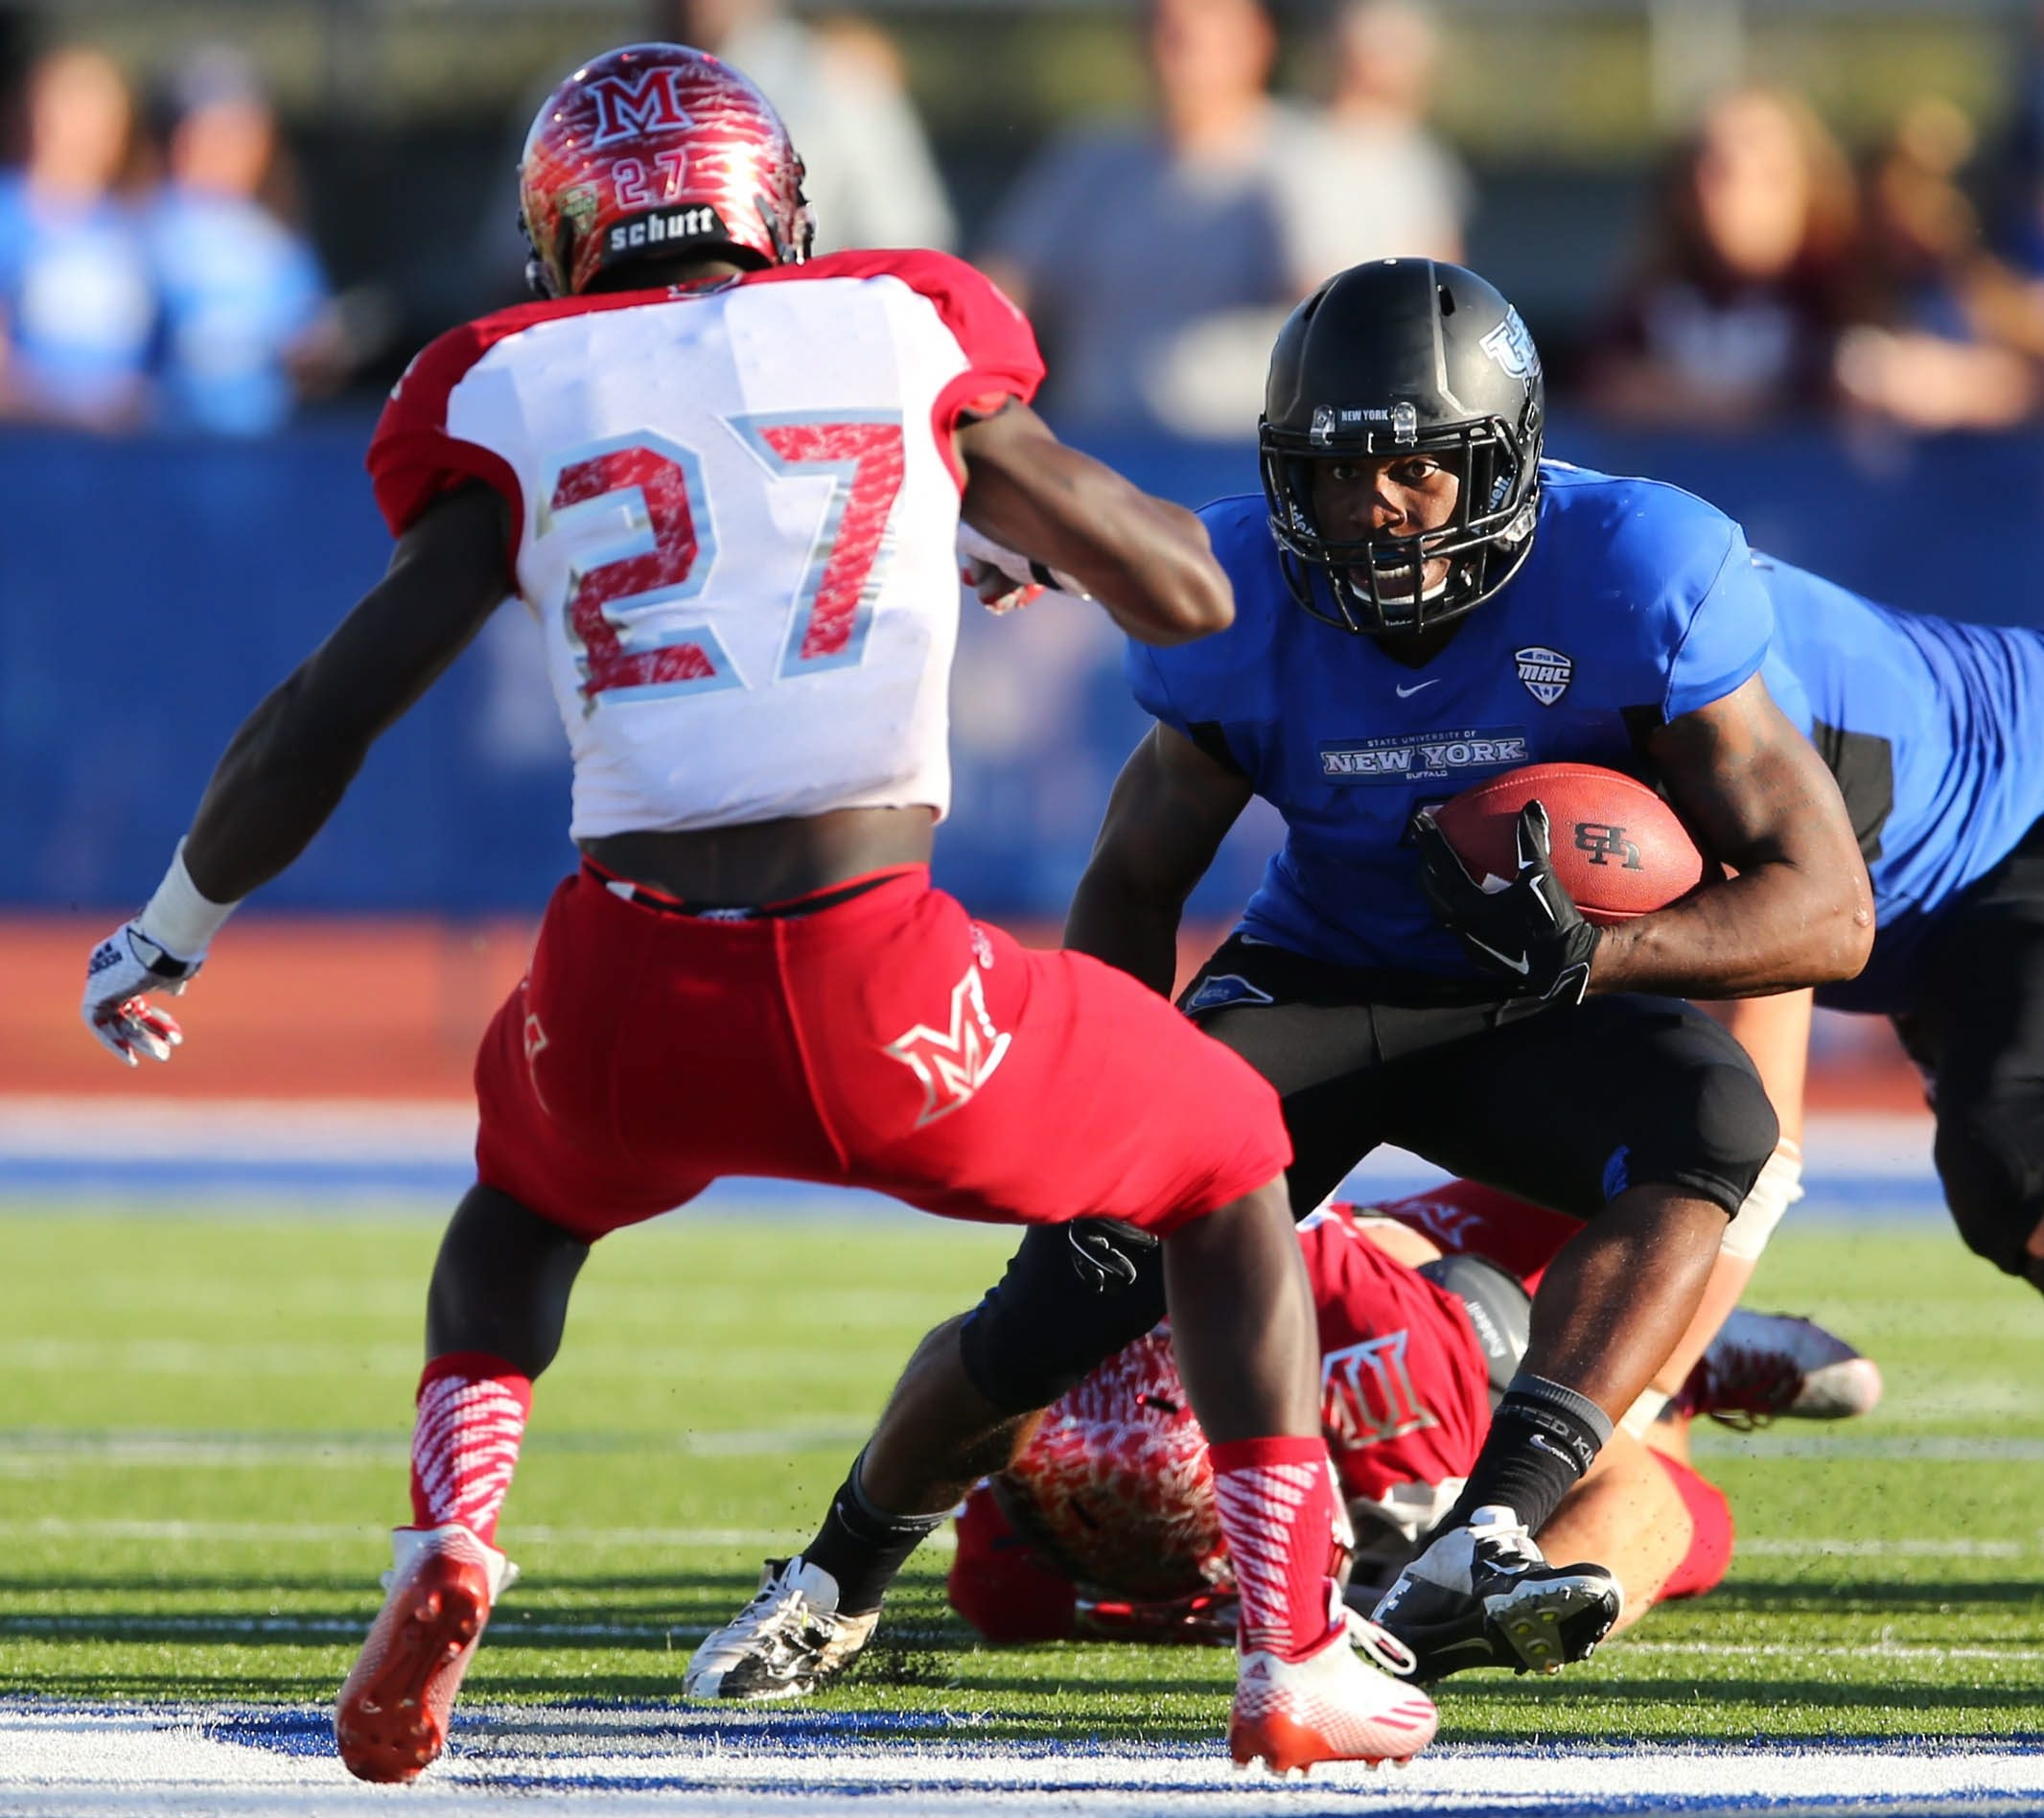 Anthone Taylor needs 74 yards to become the eighth UB player to rush for 1,000 in a season.